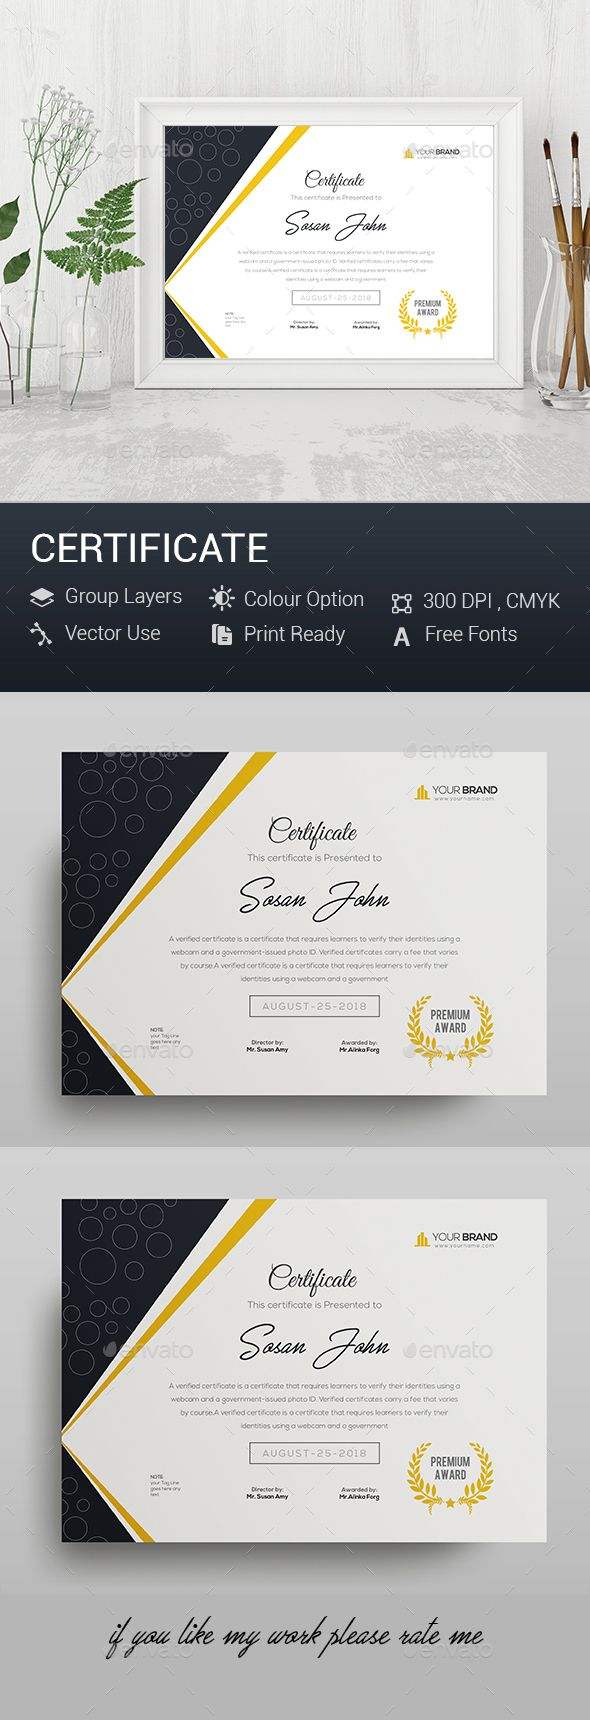 pin by maria alena on modern certificate design